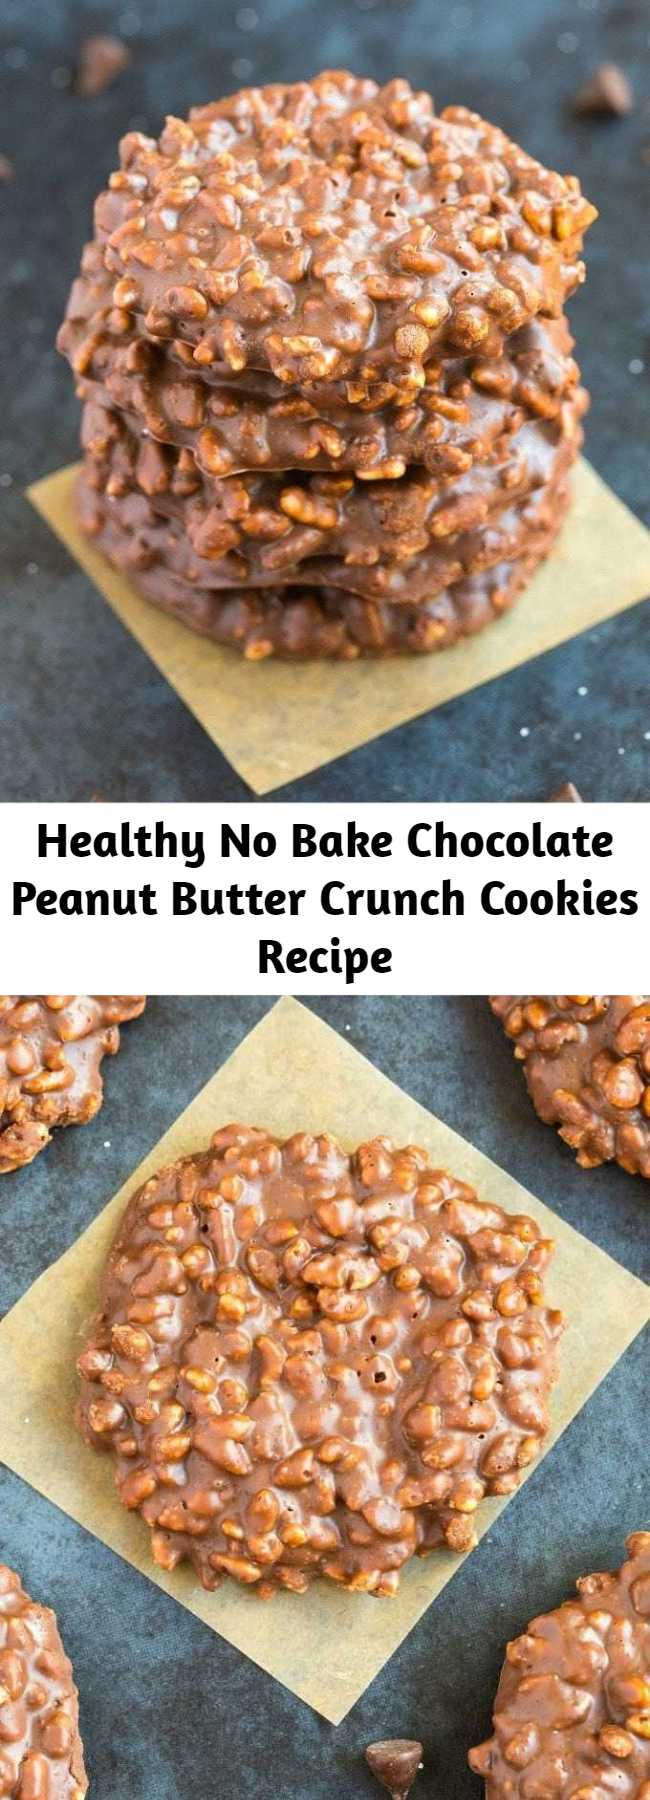 Healthy No Bake Chocolate Peanut Butter Crunch Cookies Recipe - Healthy No Bake Chocolate Peanut butter crunch cookies using just one bowl, 5 ingredients and less than 2 minutes! Easy, fool-proof drop cookies which are naturally gluten free, vegan, dairy free and sugar free!